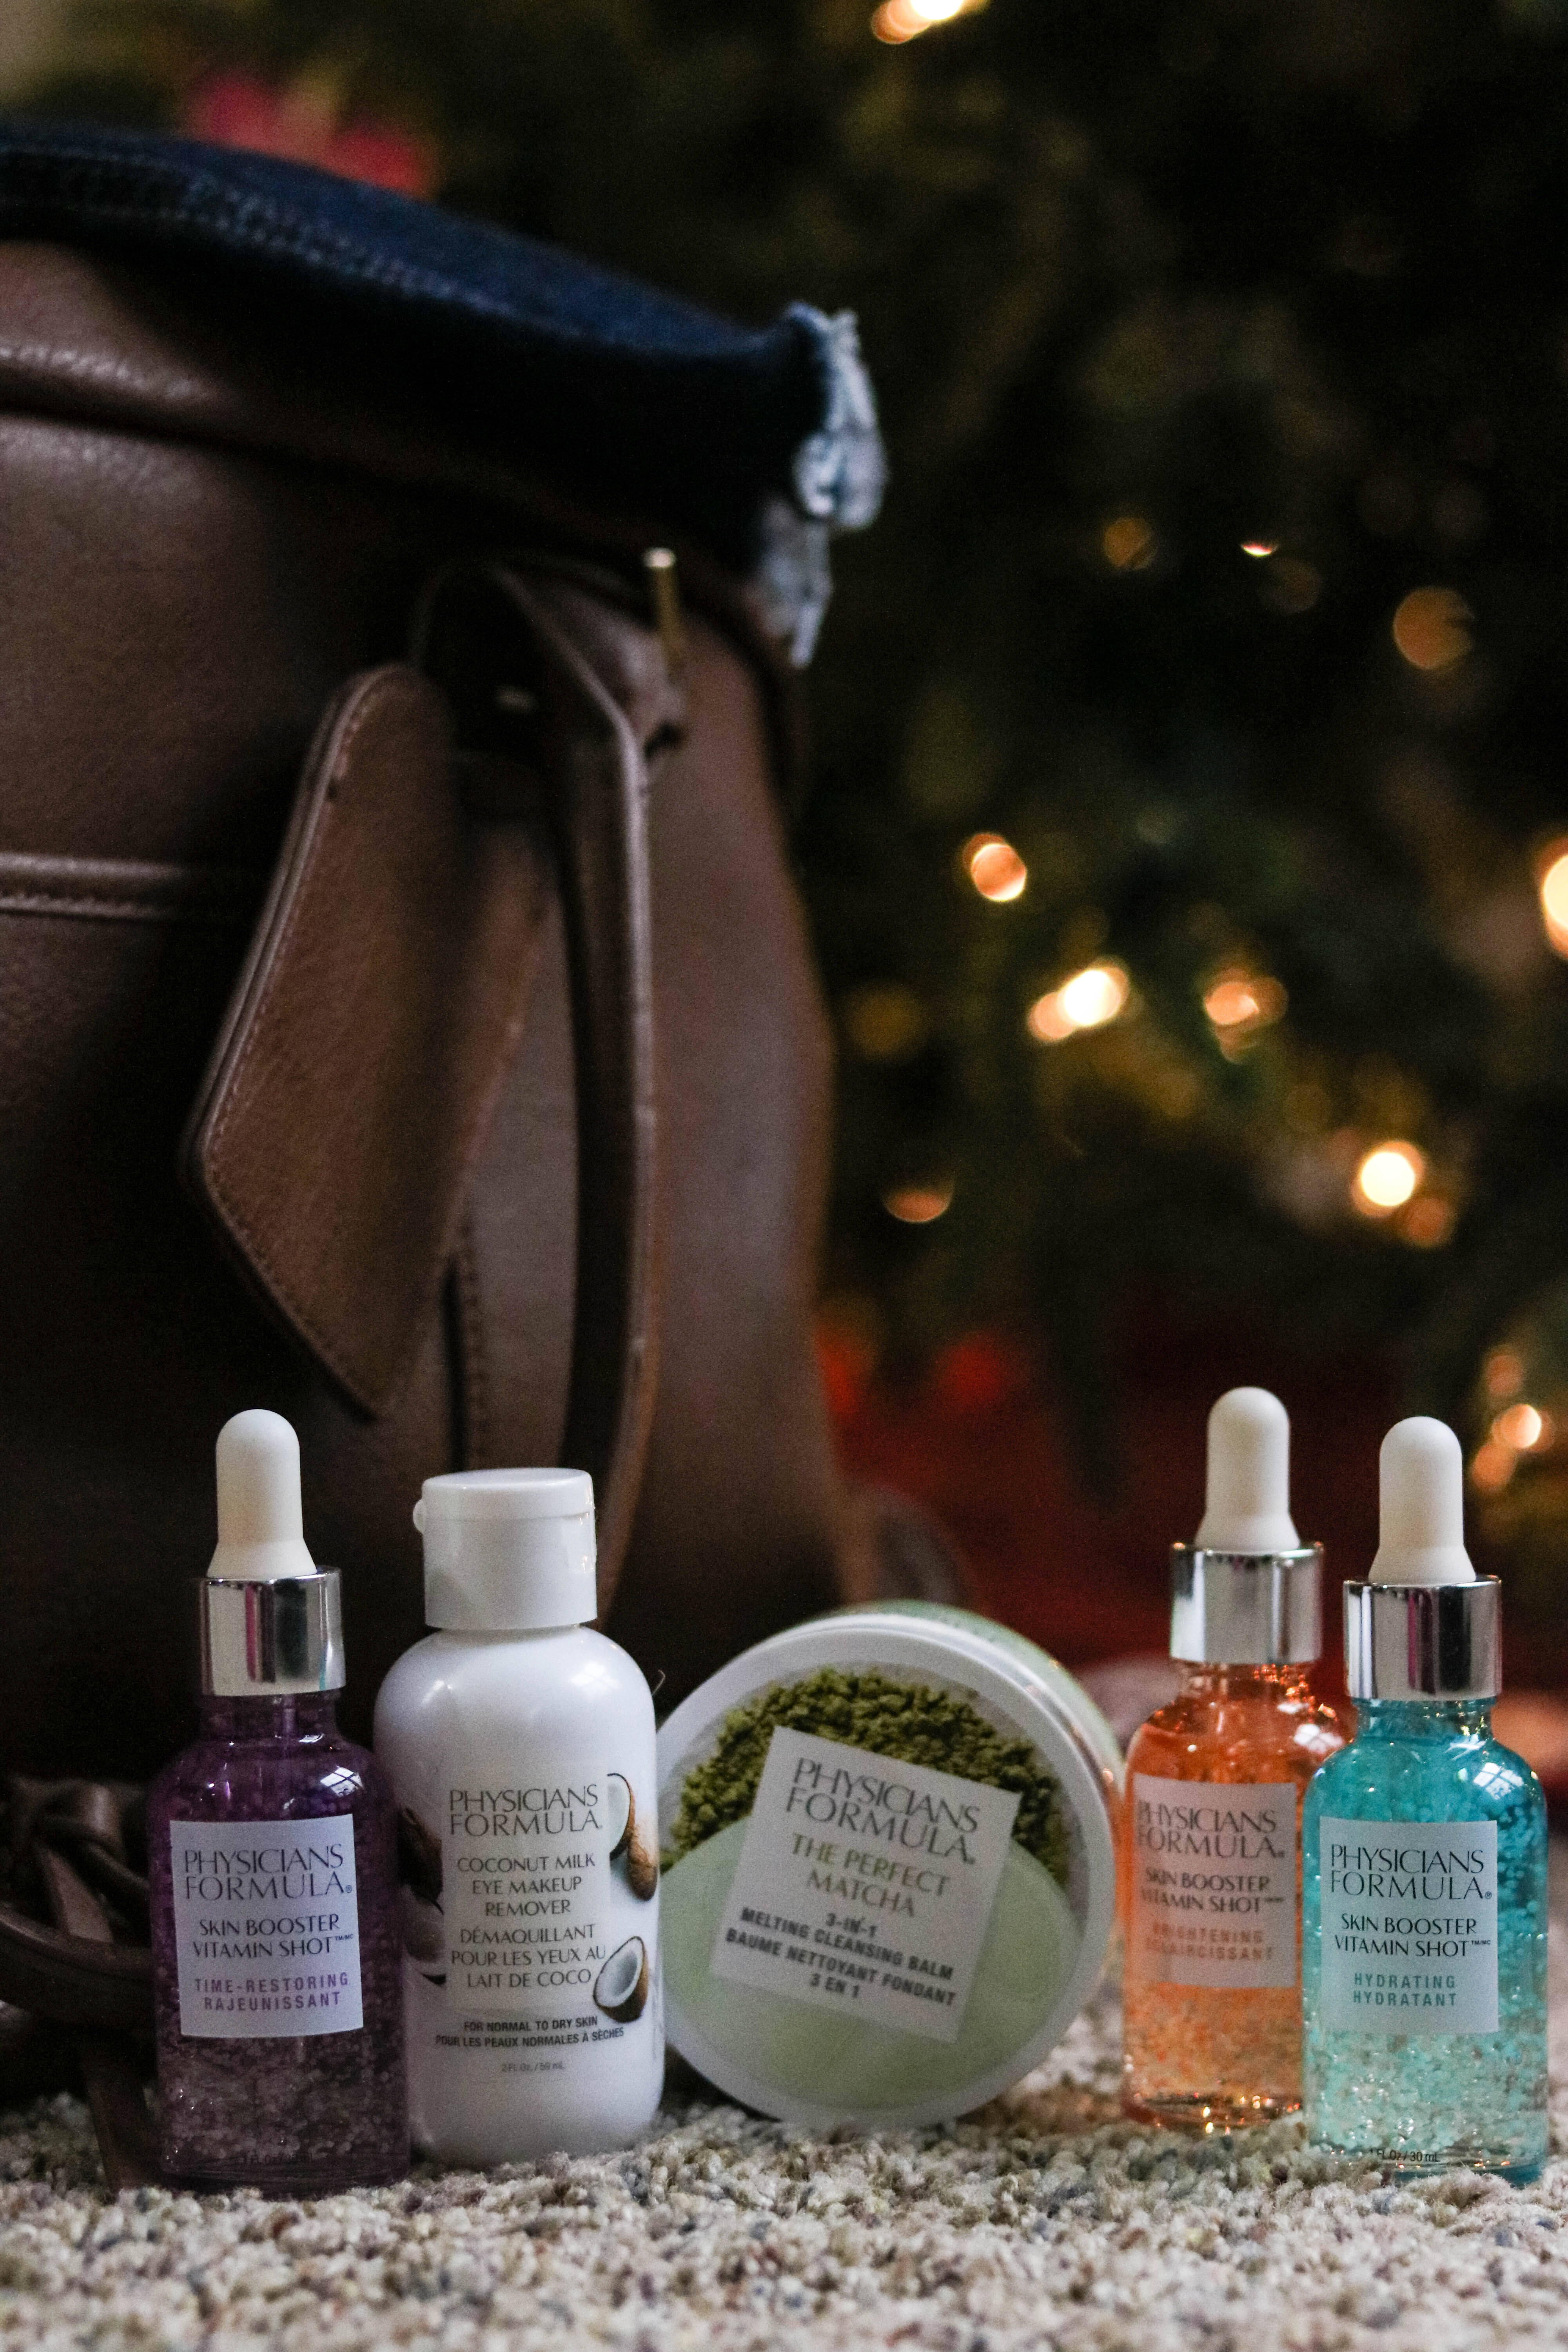 Best Travel Skincare Essentials for the Holidays - new Physicians Formula products on Coming Up Roses